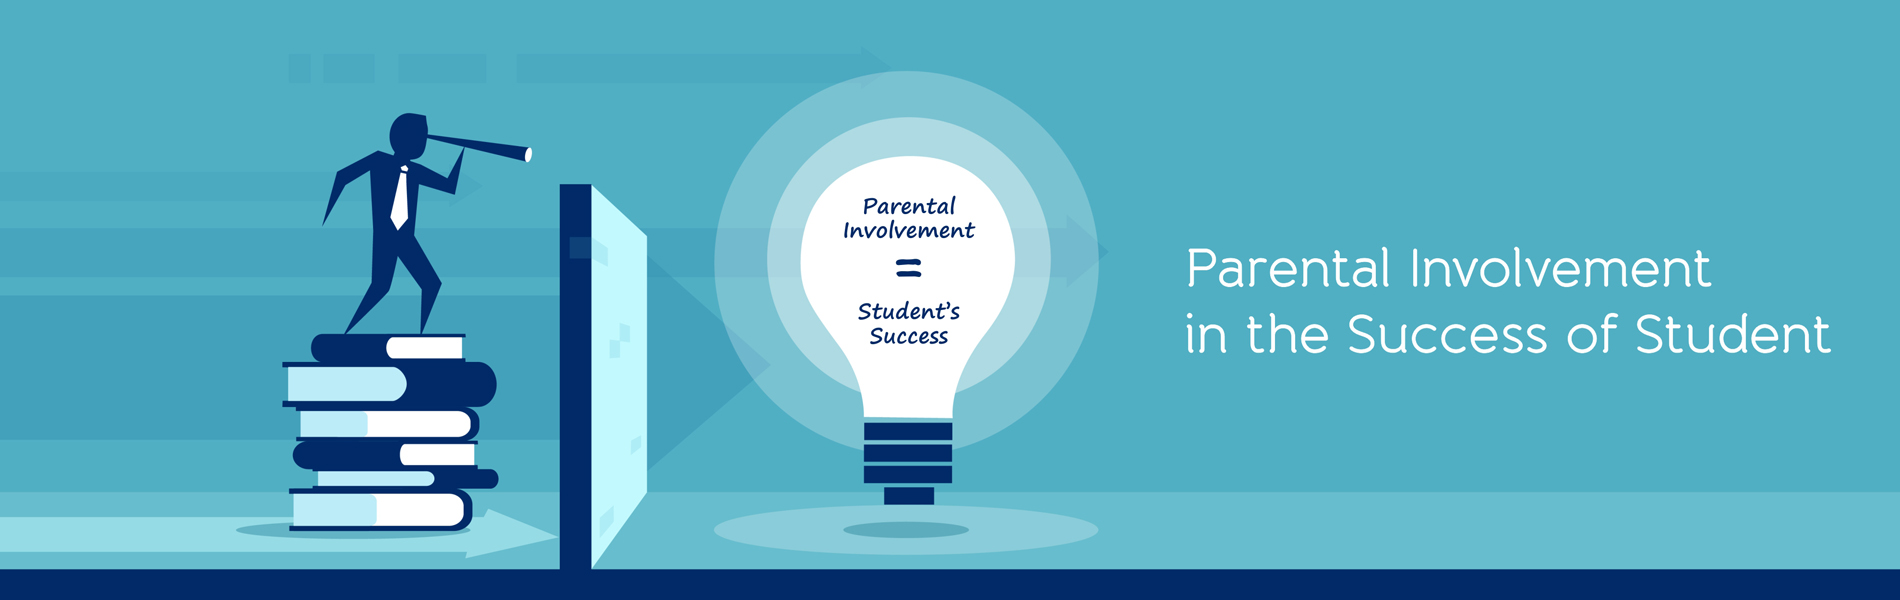 Parental-Involment-in-the-Student-Success